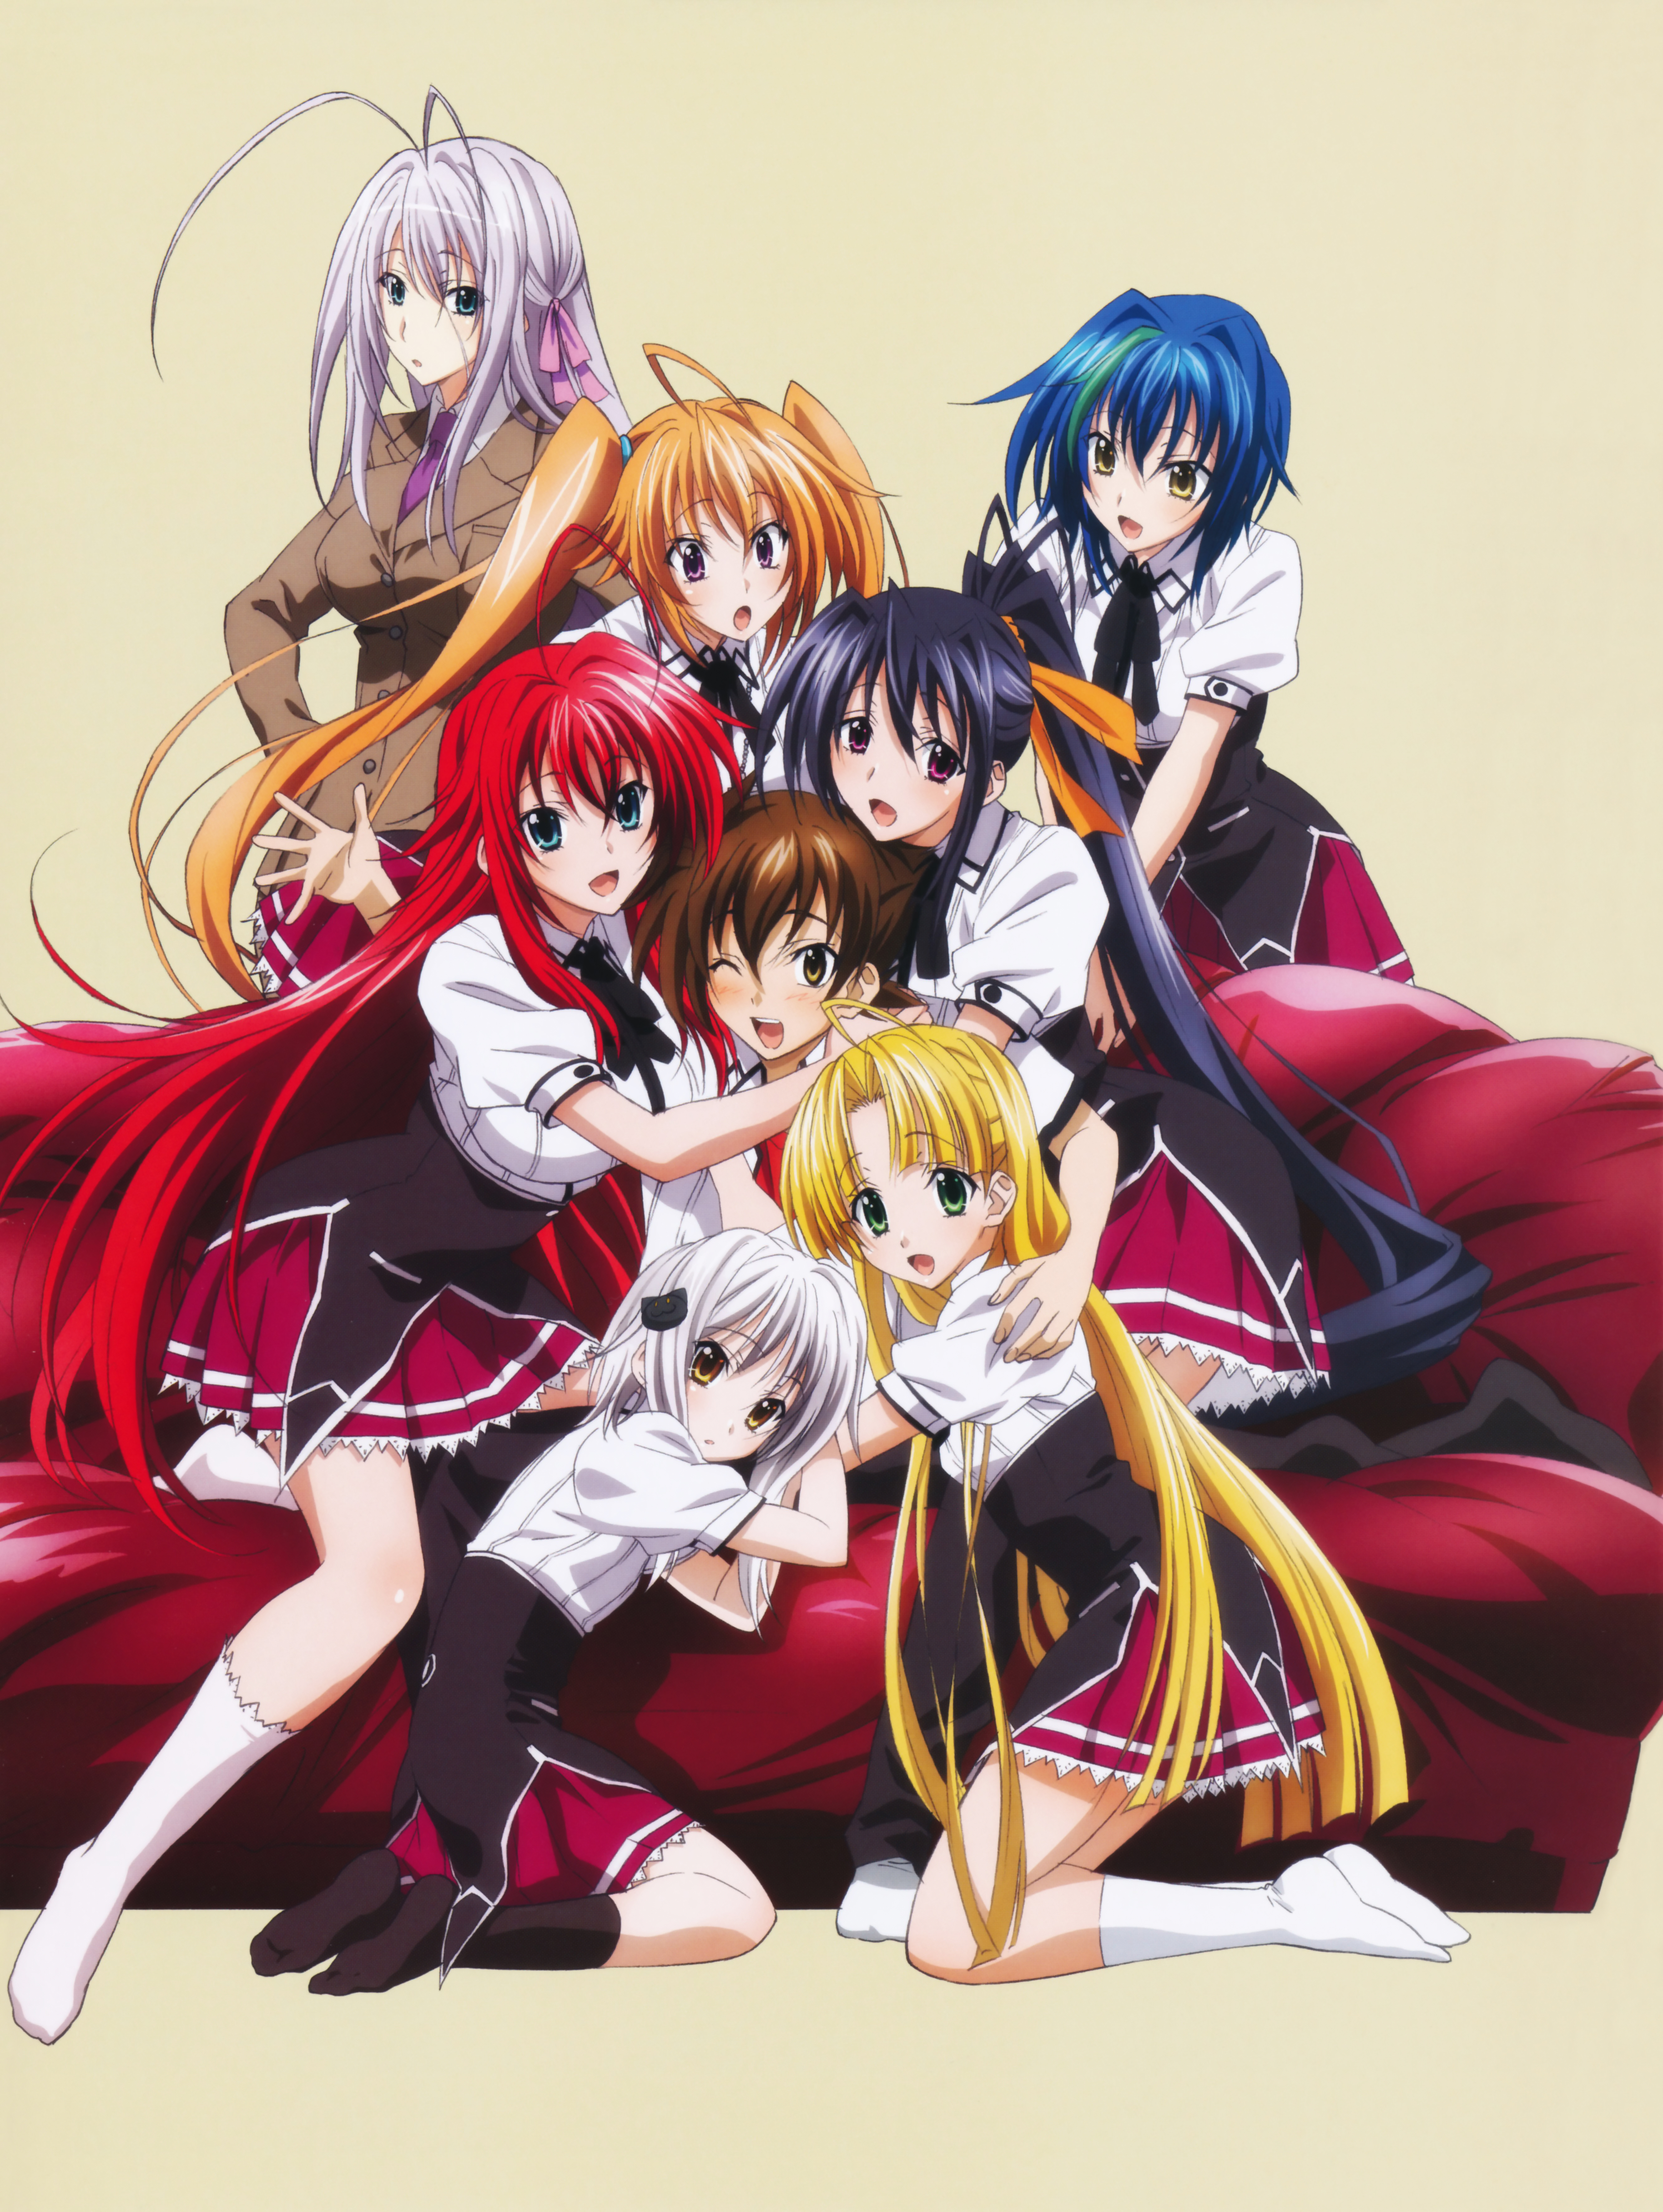 Highschool Dxd Mobile Wallpaper Zerochan Anime Image Board